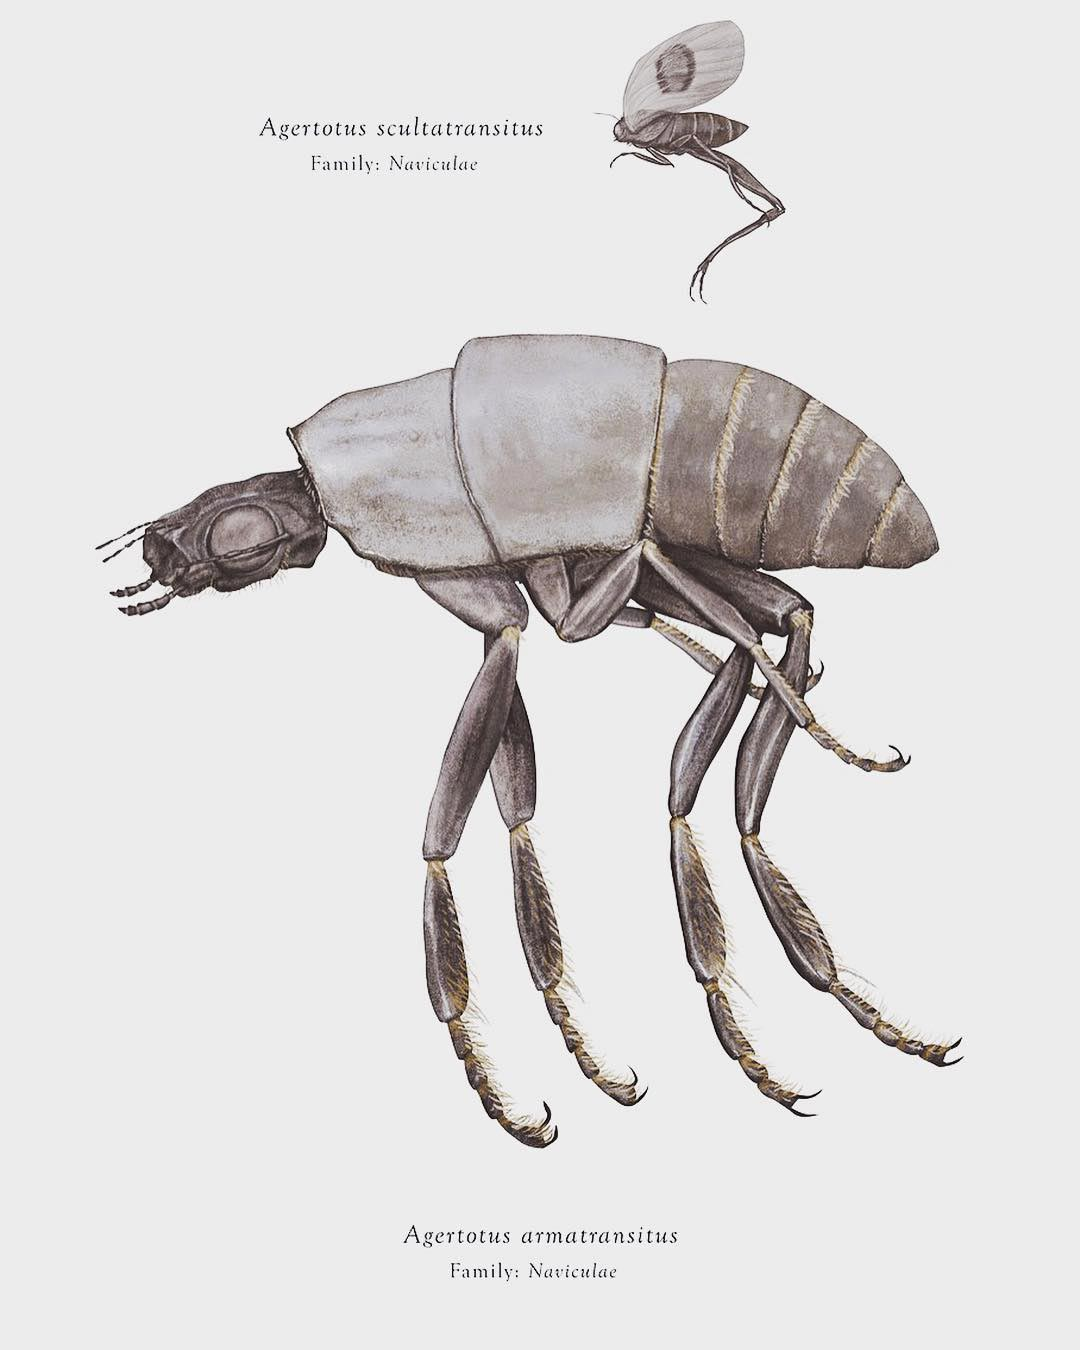 Agertotus armatransitus e Agertotus scultatransitus, Arthropoda Iconicus